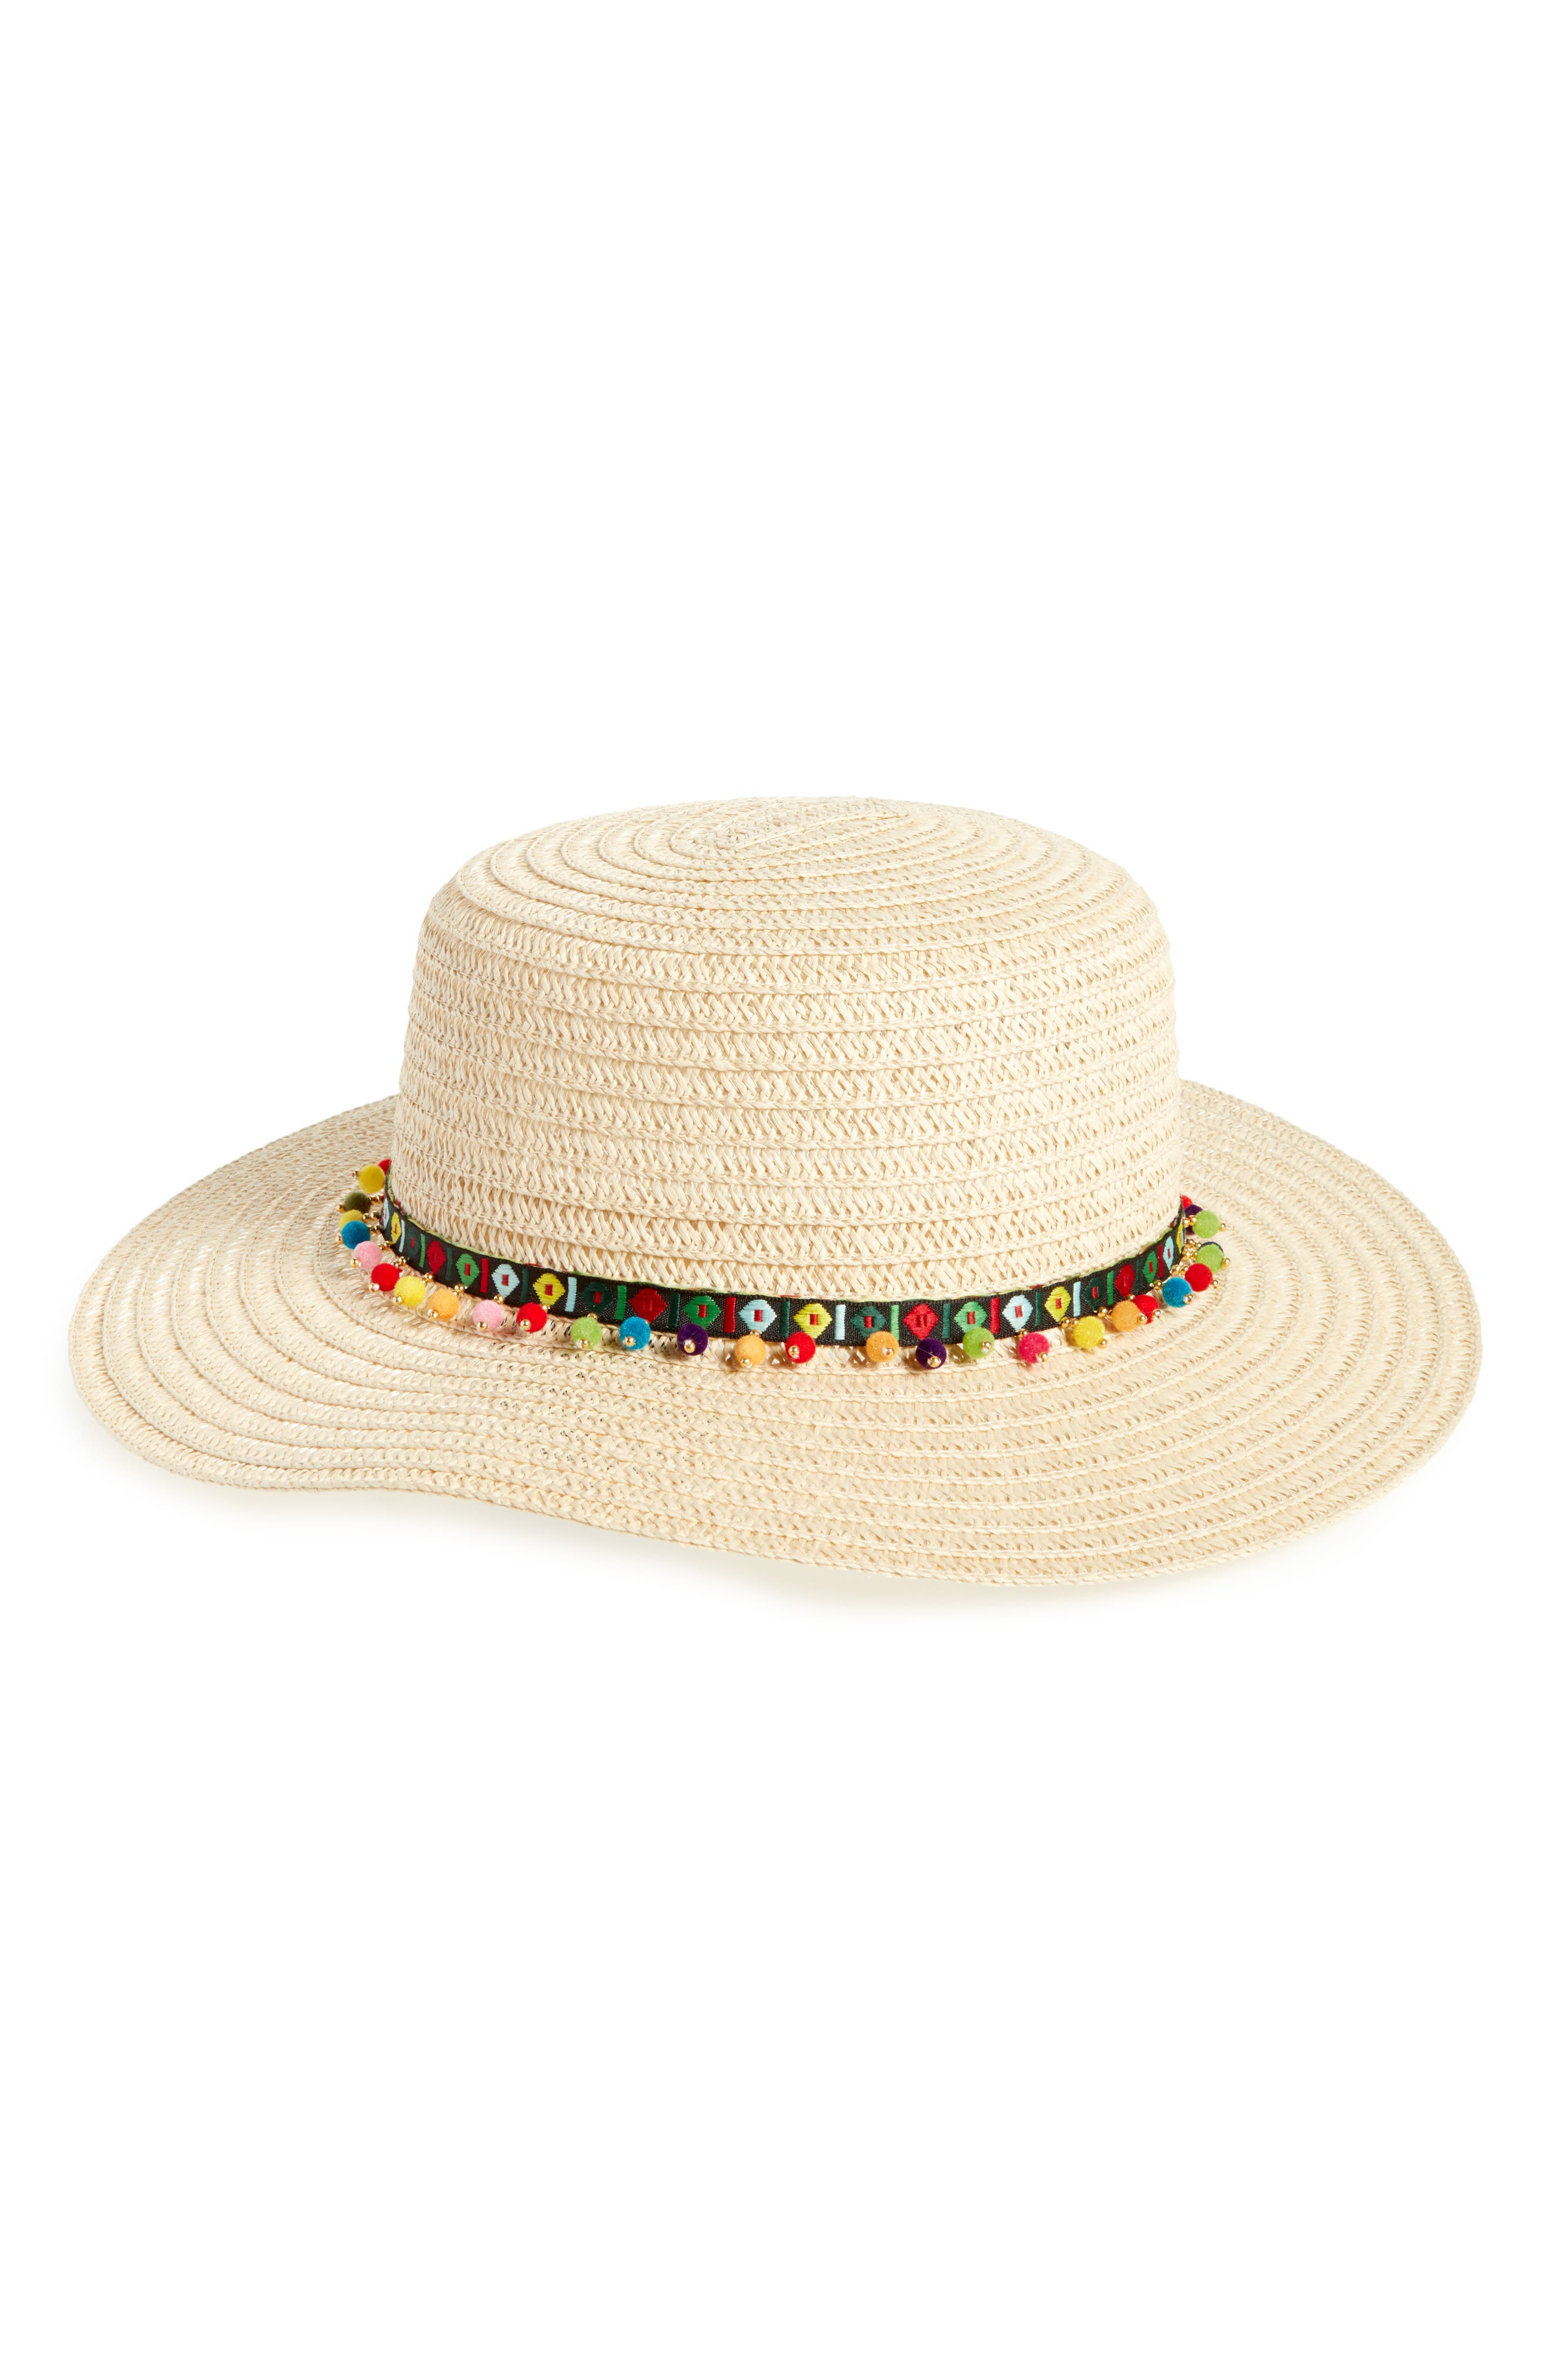 Bead Trim Straw Boater Hat,                             Main thumbnail 1, color,                             235